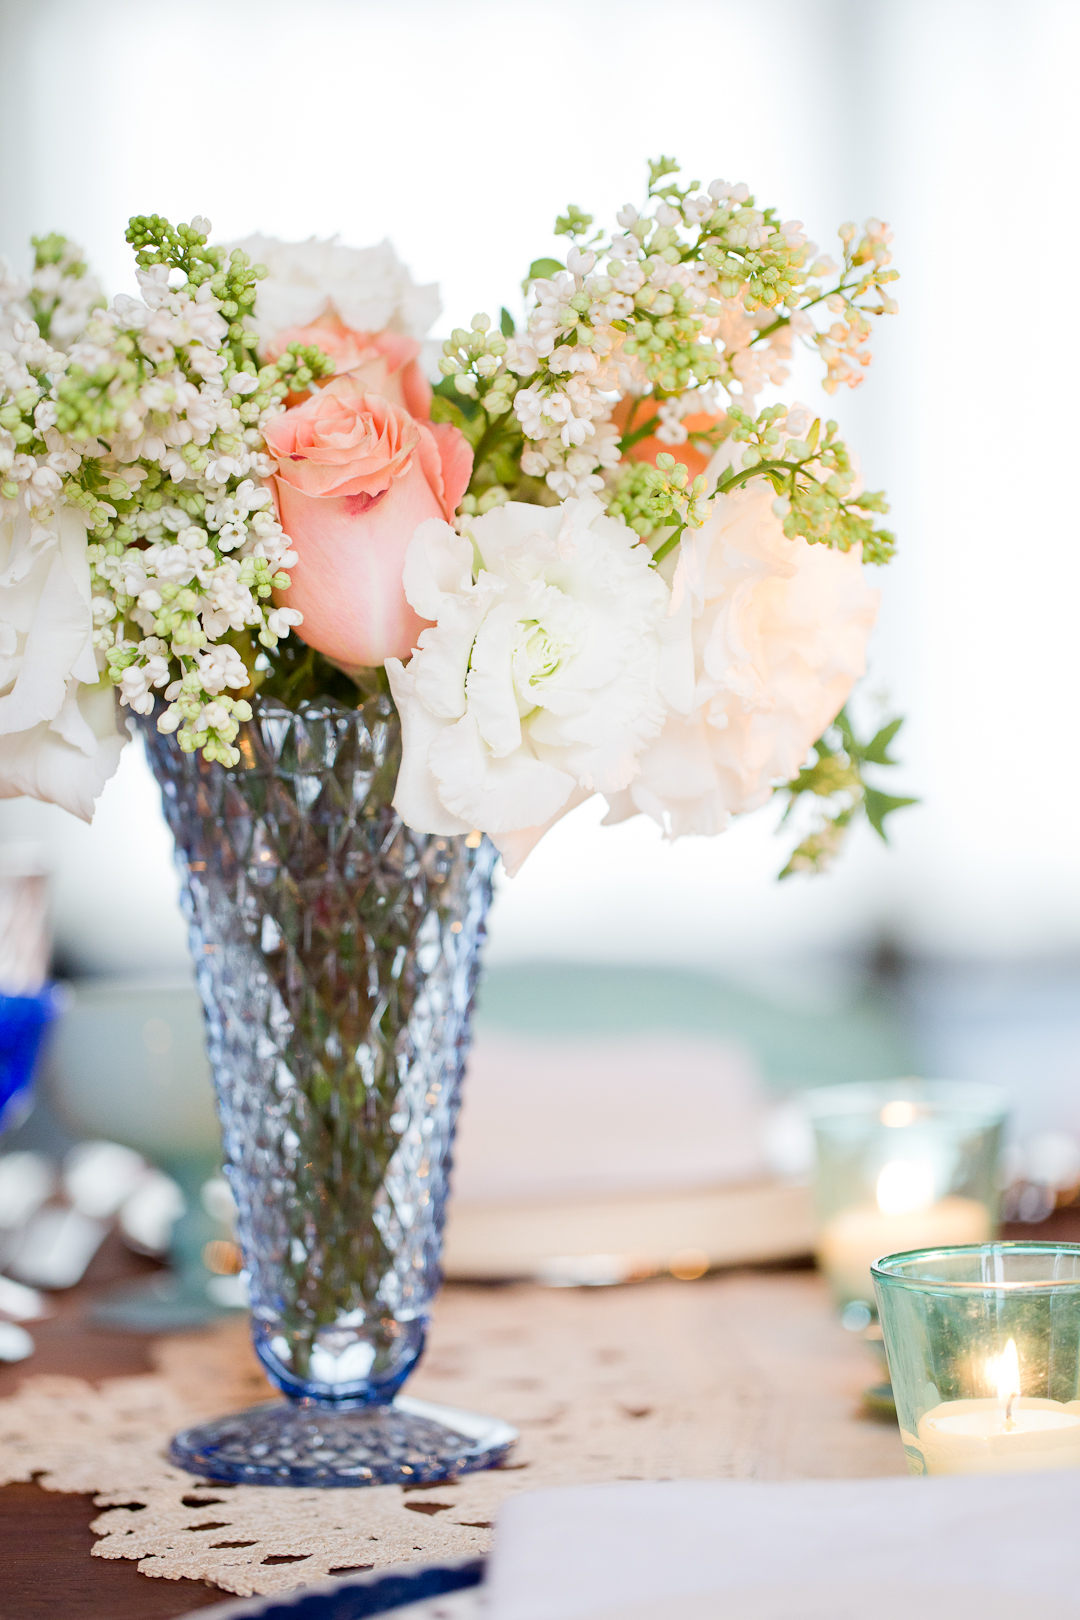 melissa kruse photography - bubbly bride styled shoot (the green building brooklyn) final web-380.jpg